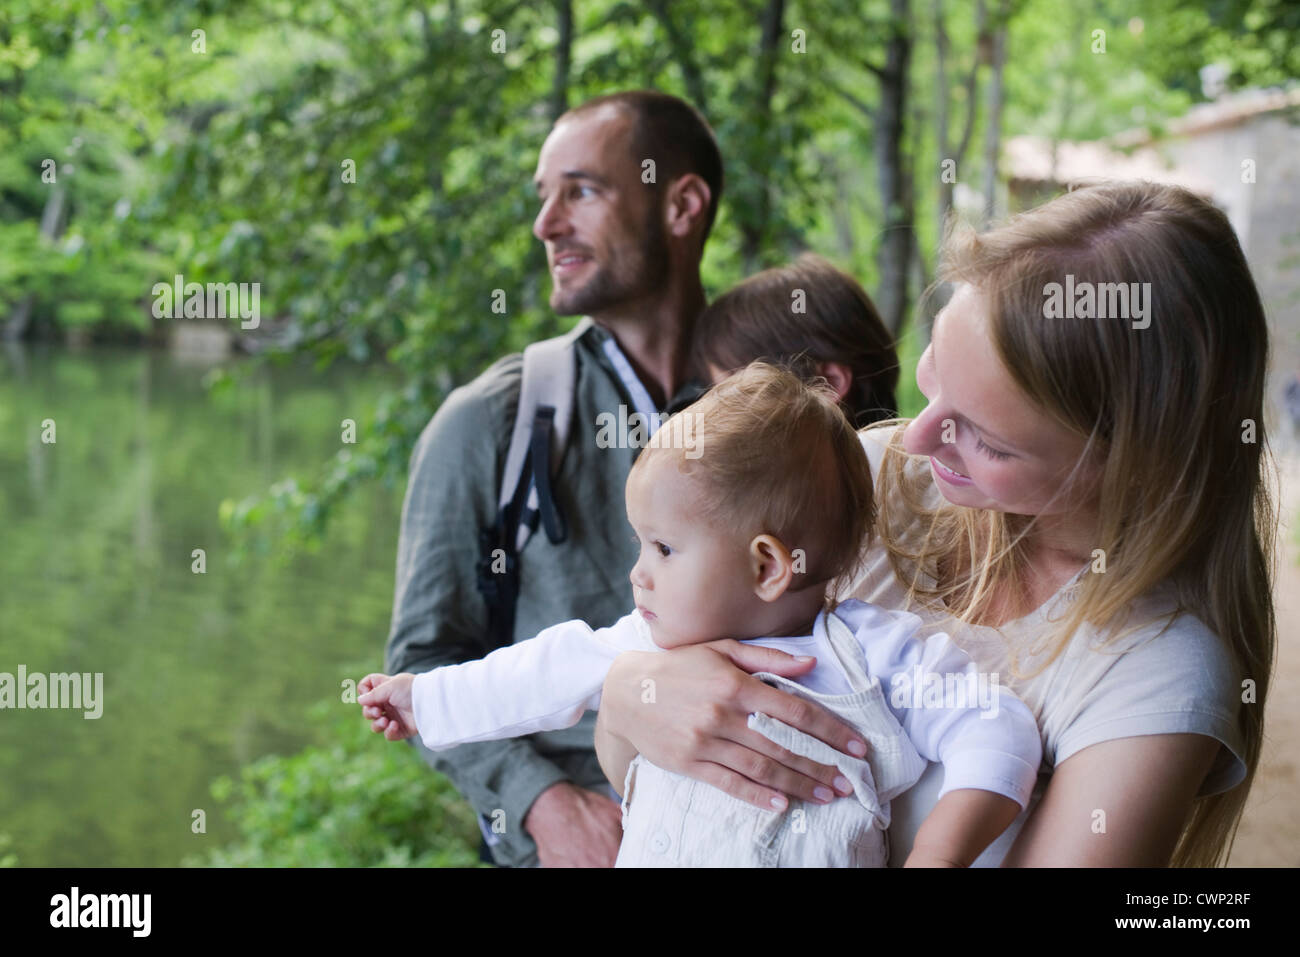 Family in woods, focus on mother holding baby girl - Stock Image